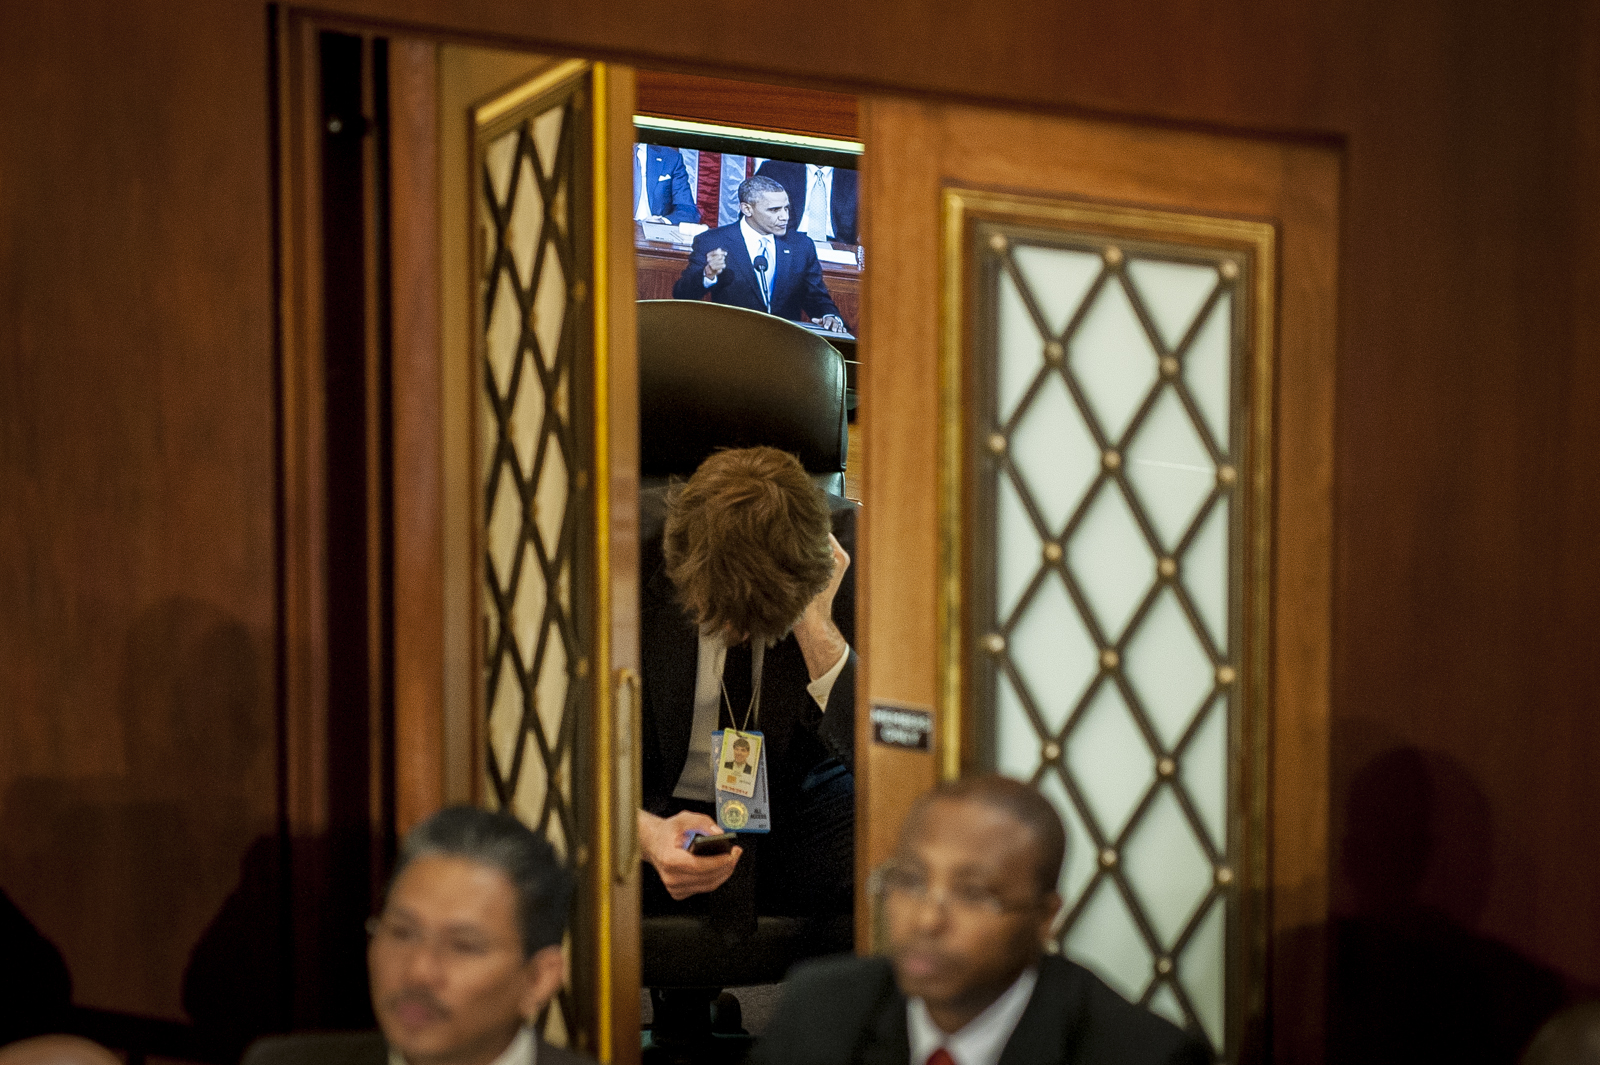 A Congressional Staff member looks on his cellphone in a room adjacent to the House Chamber as U.S. President Barack Obama delivers the State of the Union address to a joint session of Congress at the Capitol in Washington, D.C., U.S., on Tuesday, Jan. 28, 2014. Photographer: Pete Marovich/Bloomberg